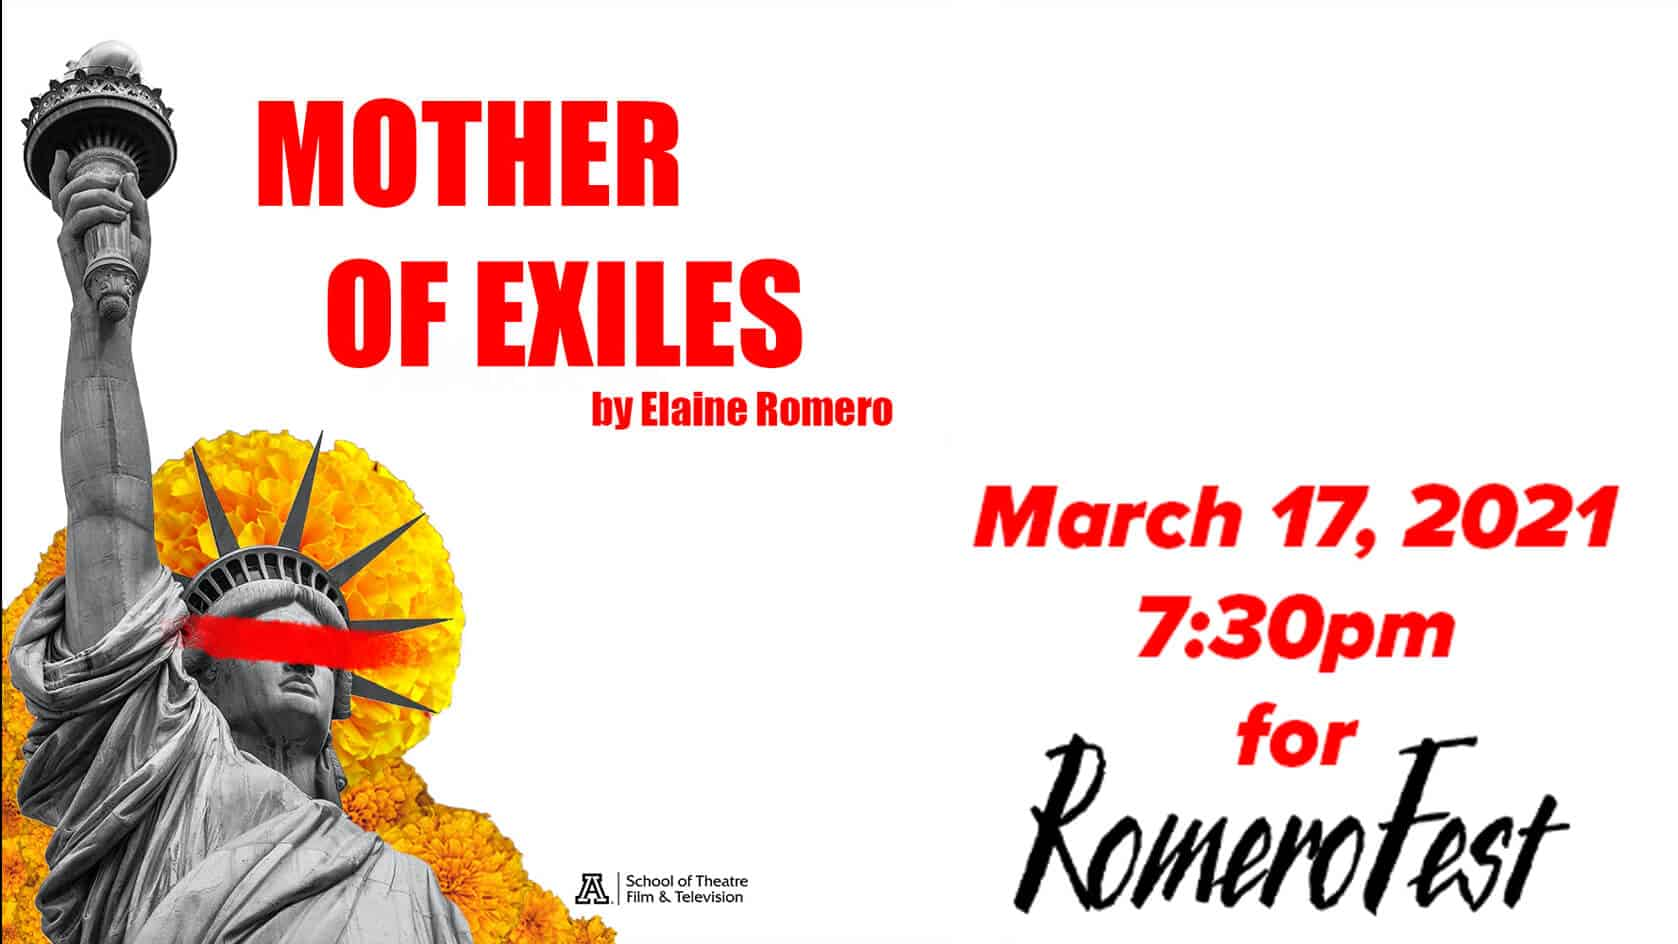 Mother of Exiles. March 17, 2021 at 7:30pm MST